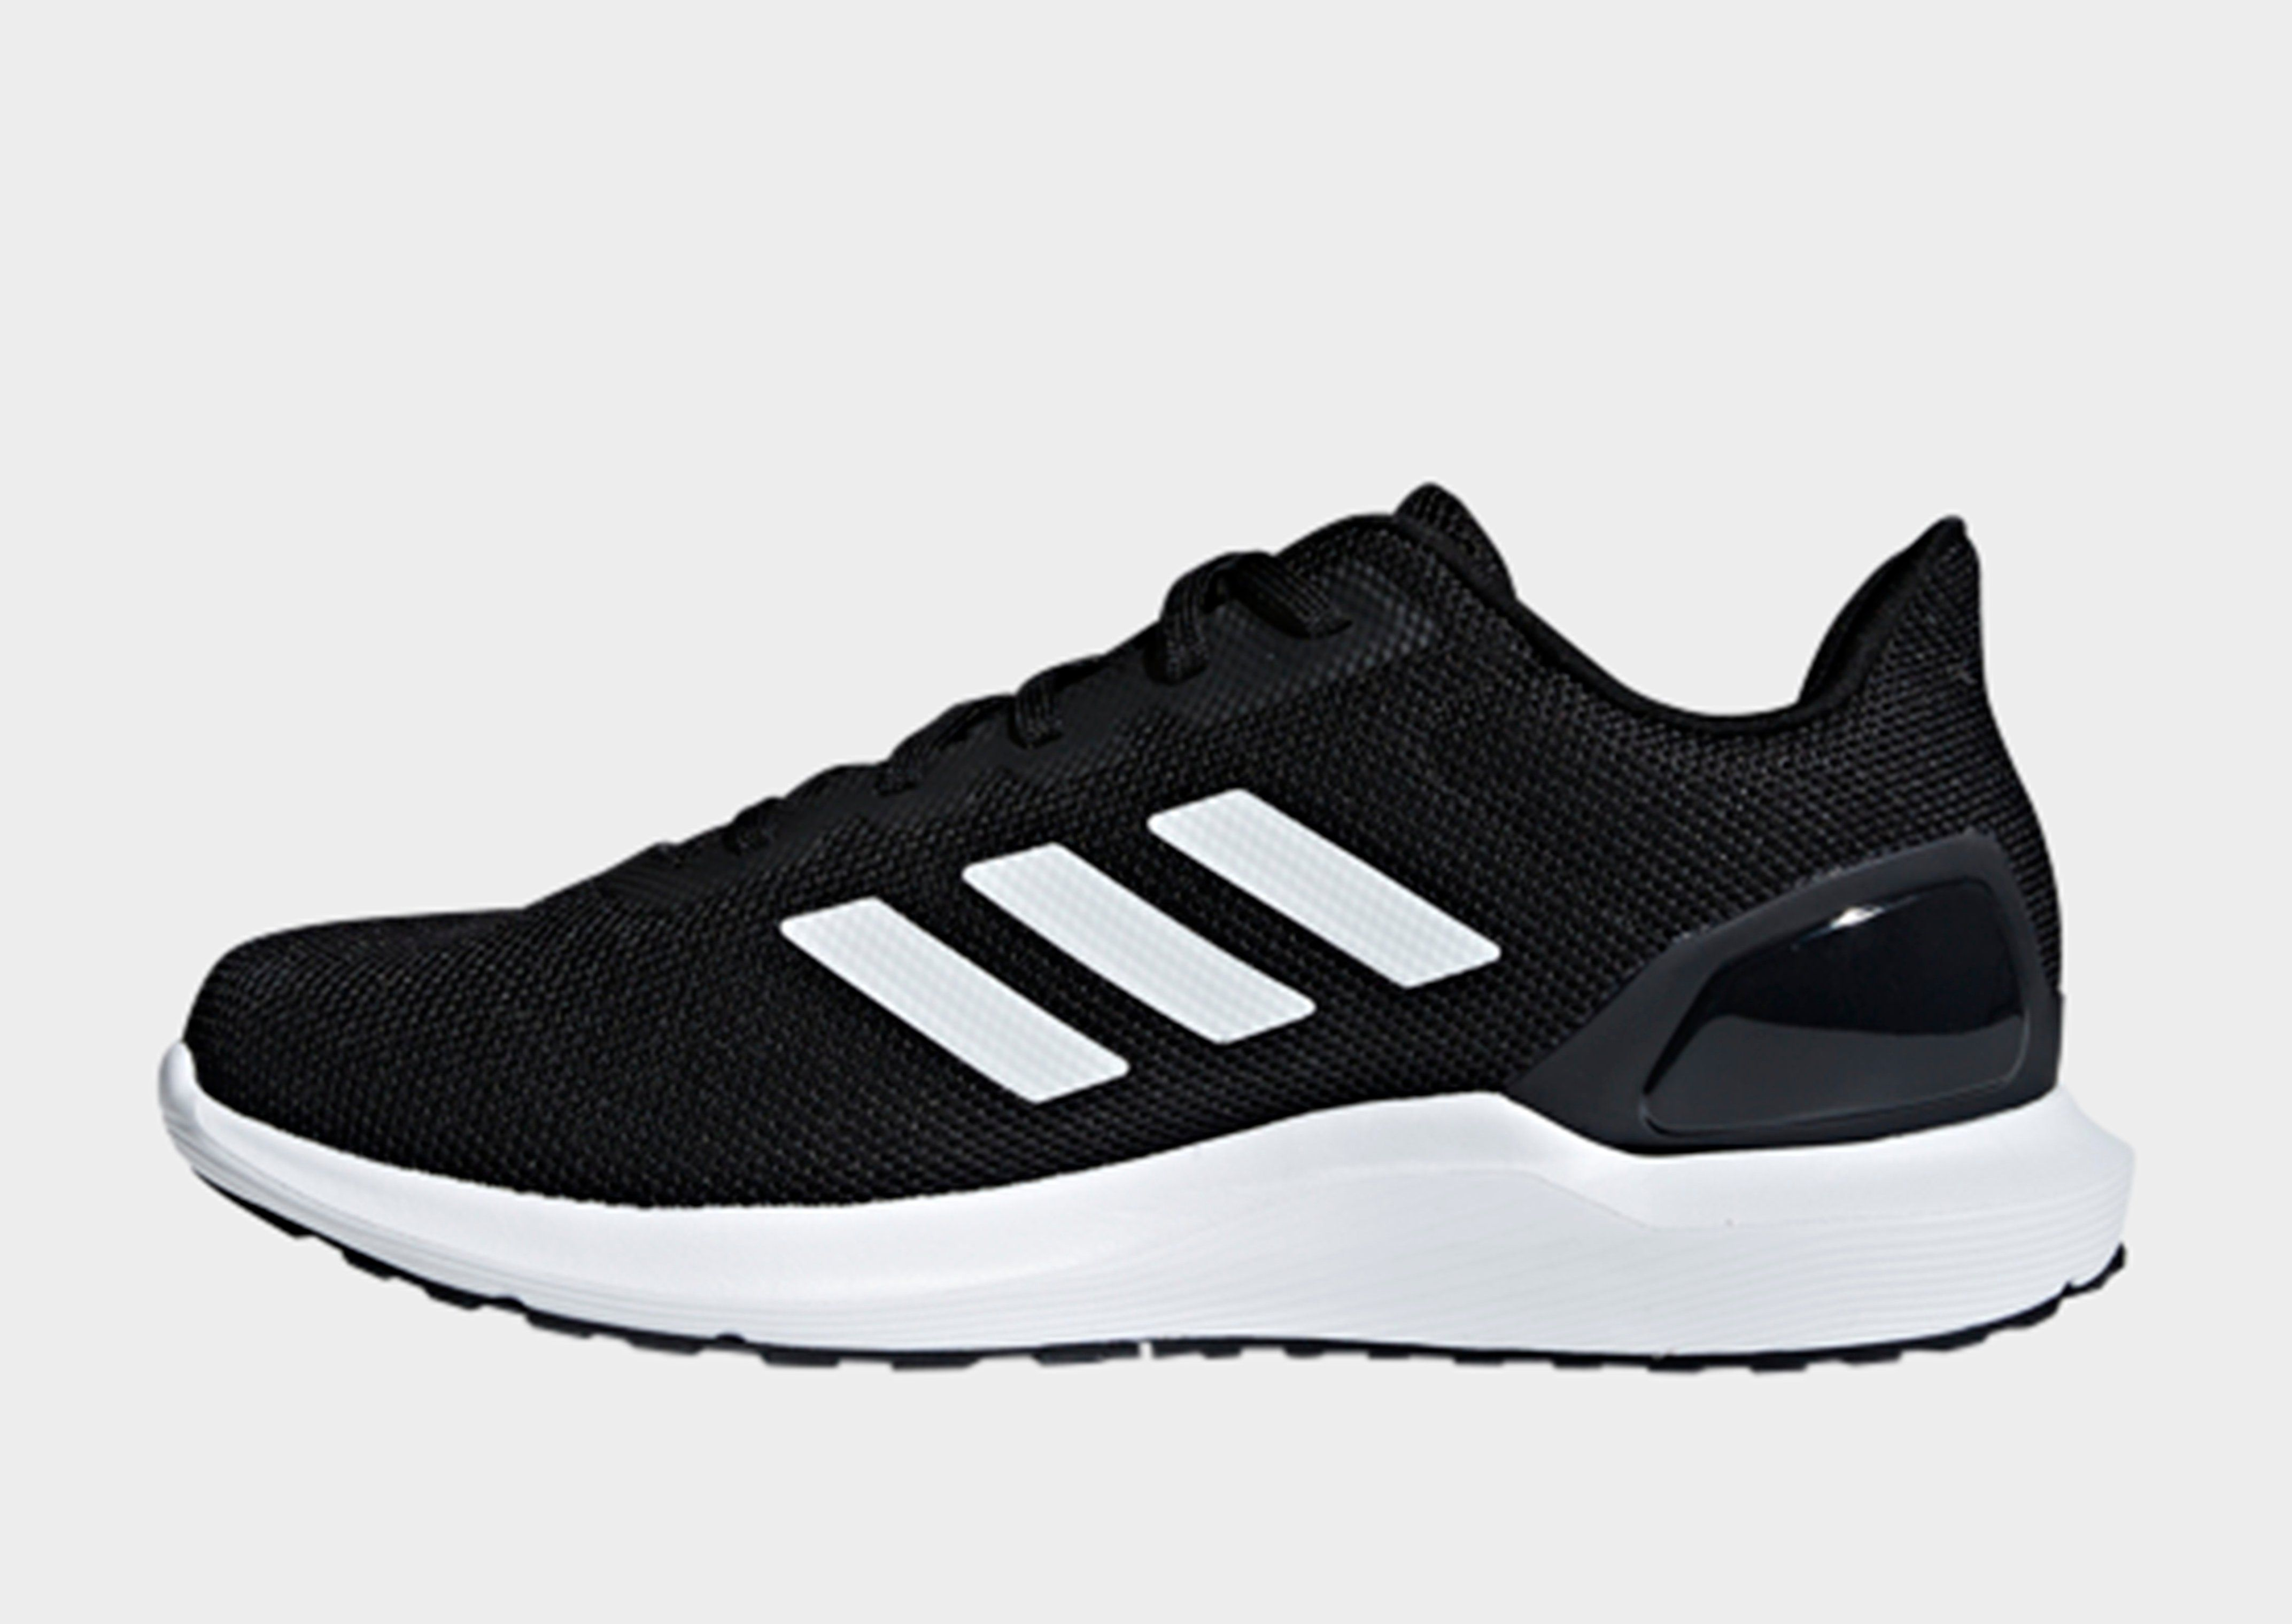 b8c47ca0 adidas Performance Cosmic 2 Shoes | JD Sports